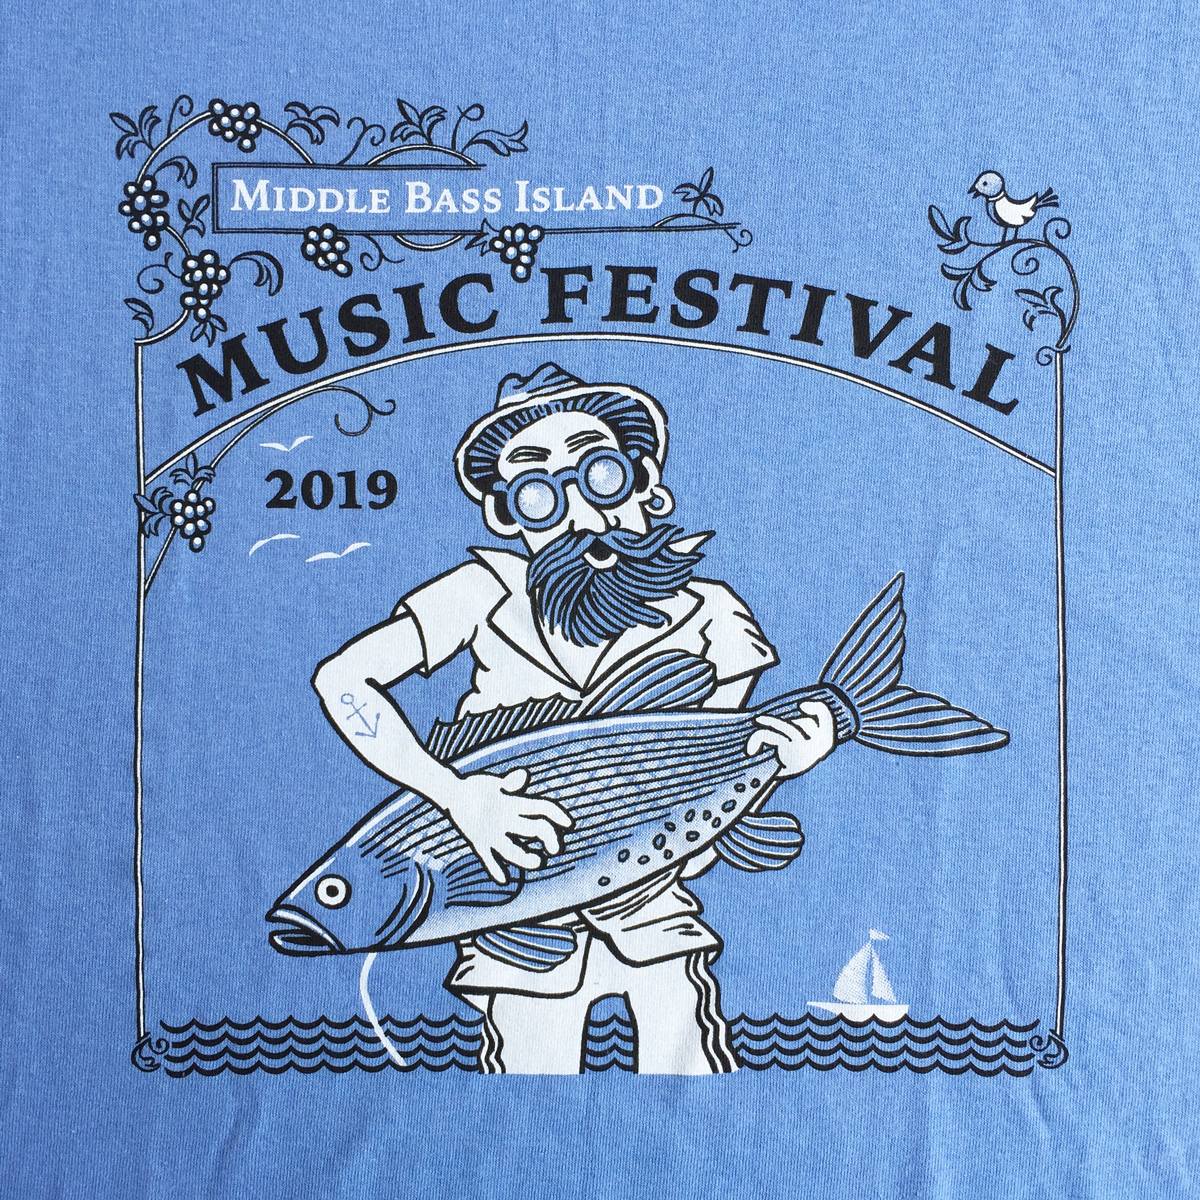 Printed sample of the 2-color t-shirt design